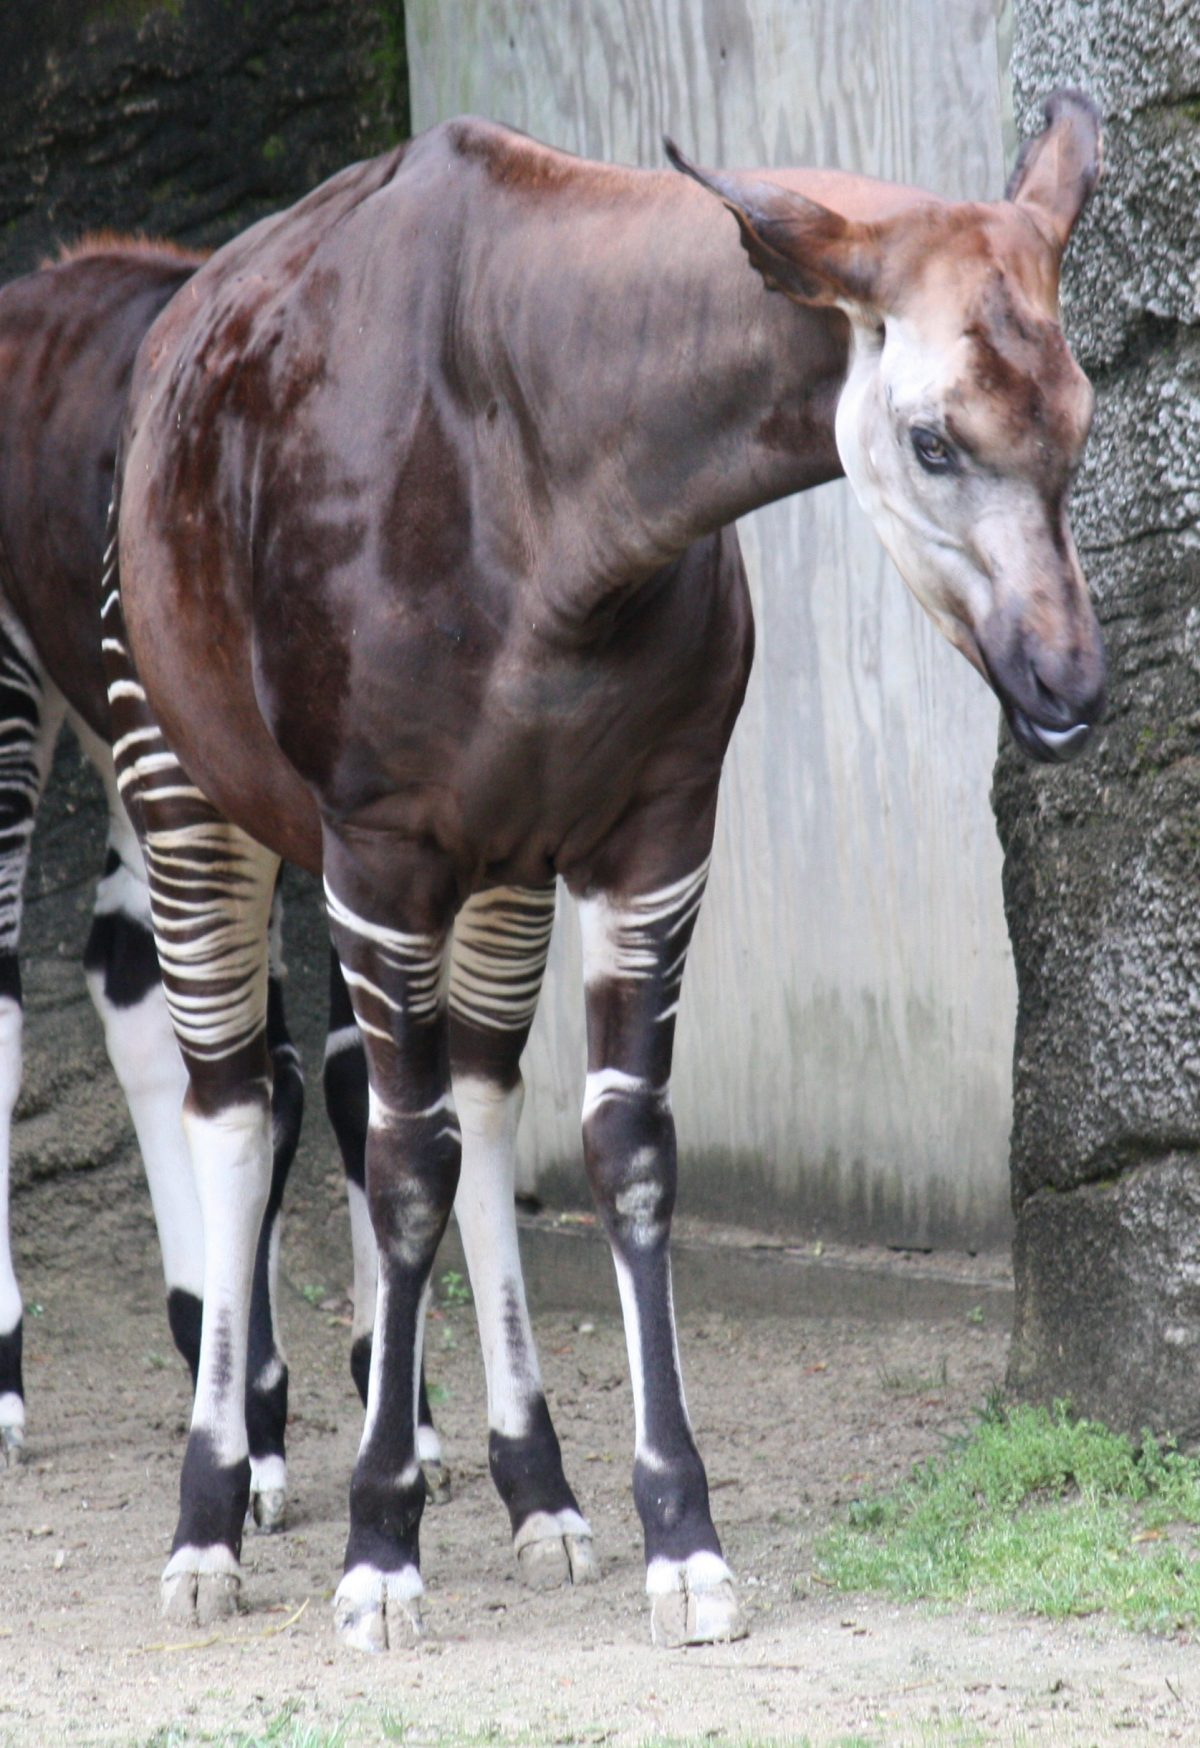 Okapi 0469 - Everything You Need To Know About The Ueno Zoo